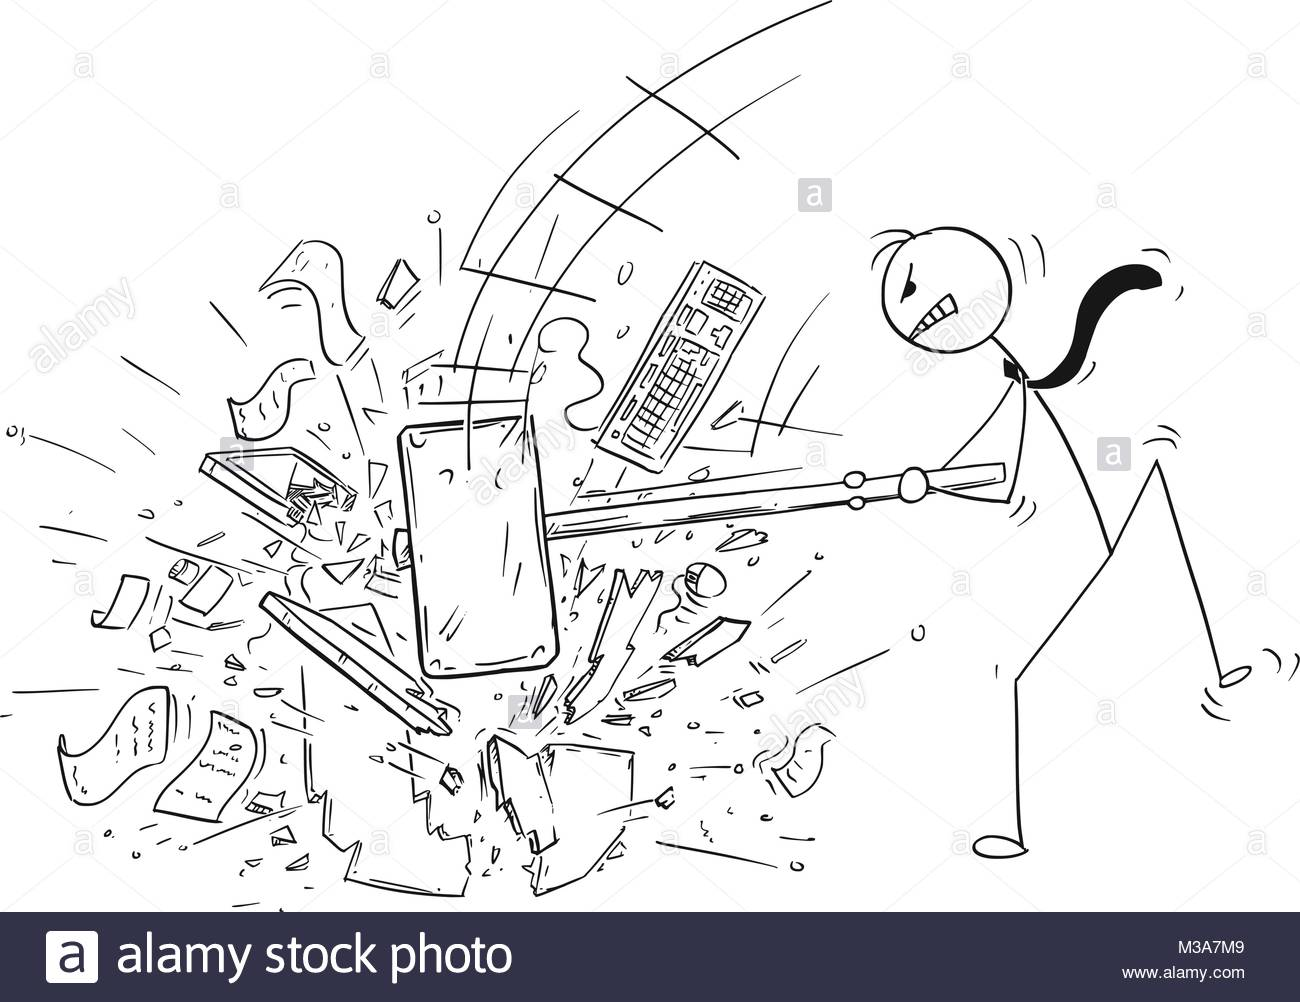 1300x1002 Destroy Black And White Stock Photos Amp Images